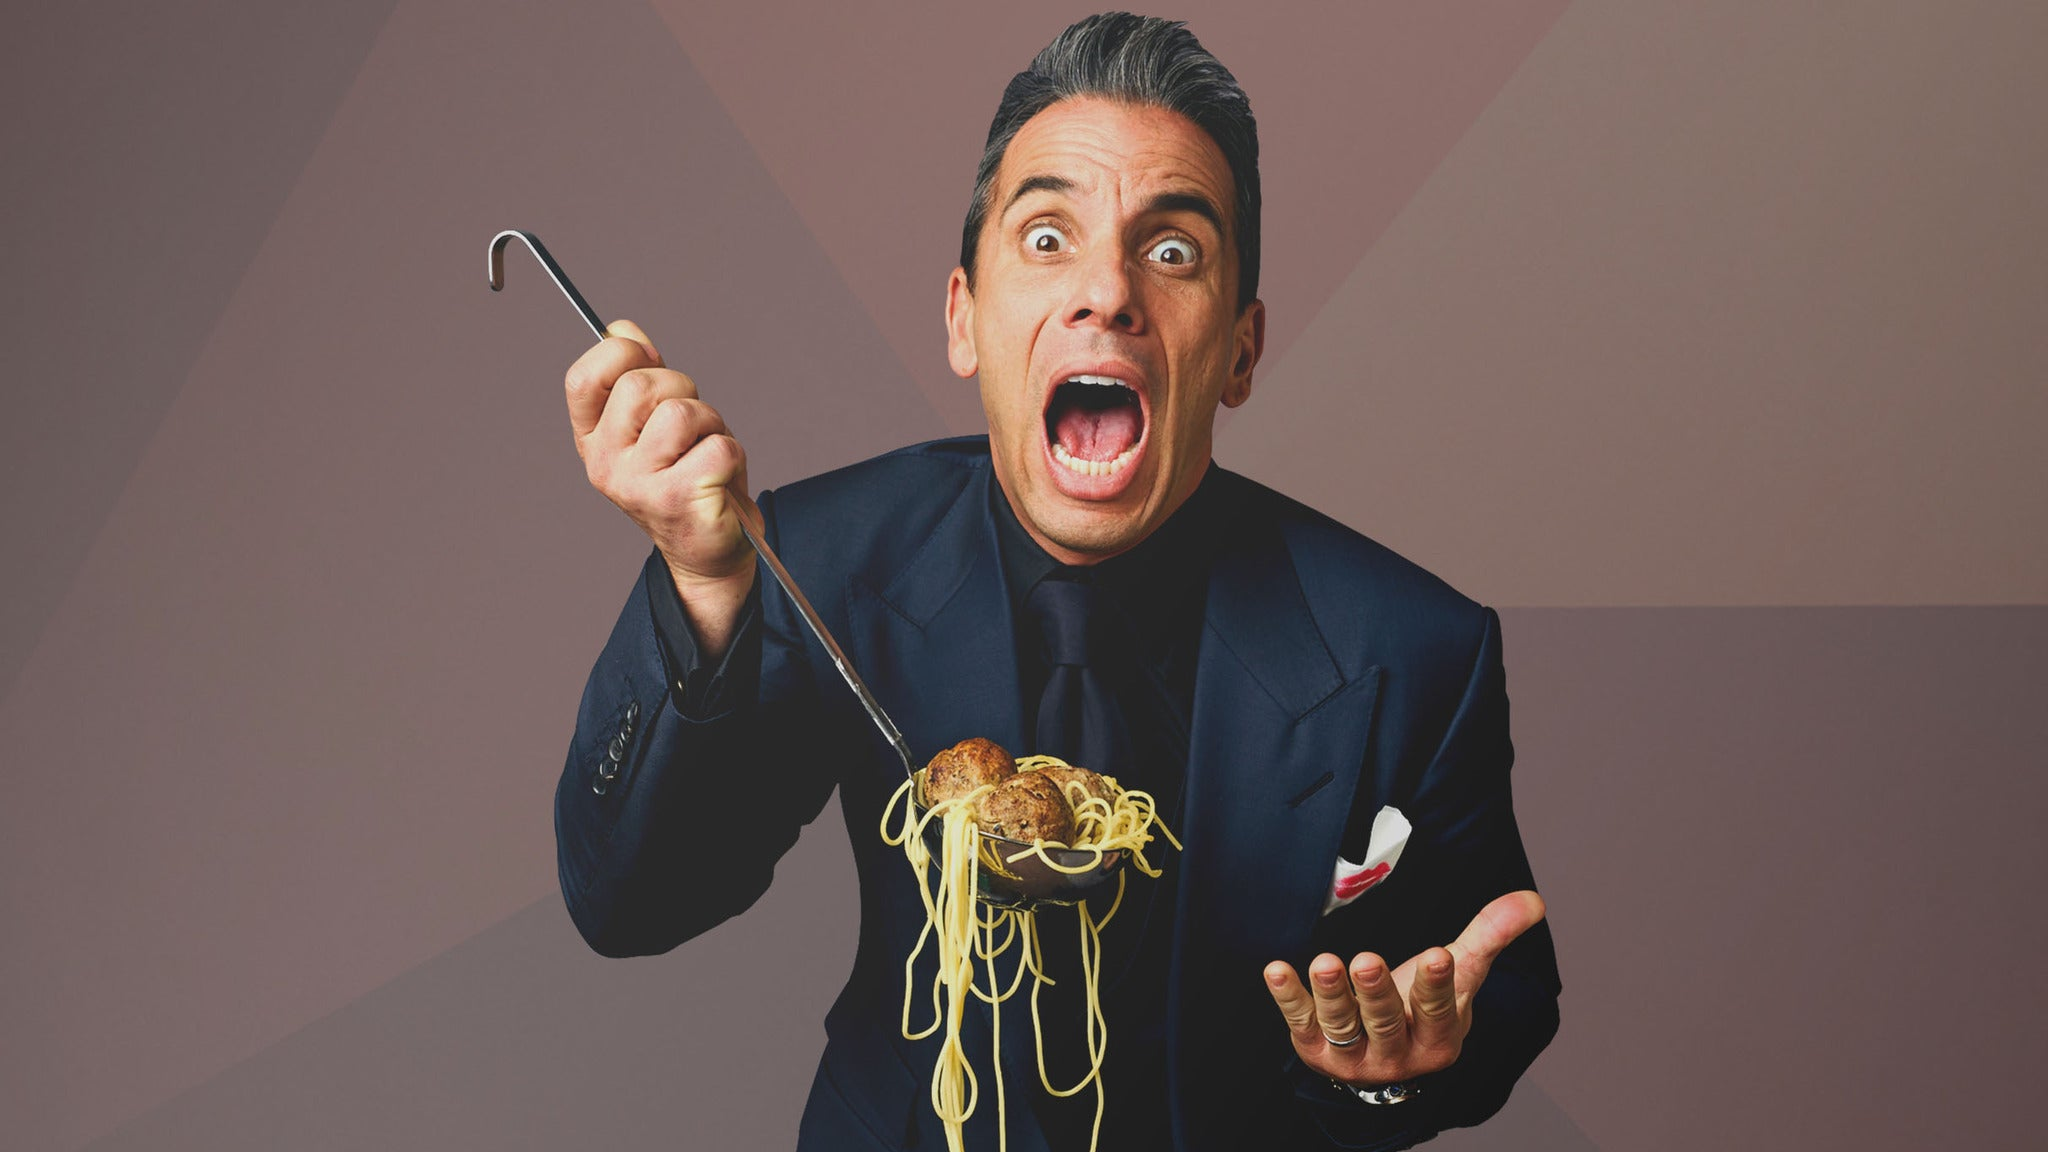 Sebastian Maniscalco at Pechanga Resort and Casino